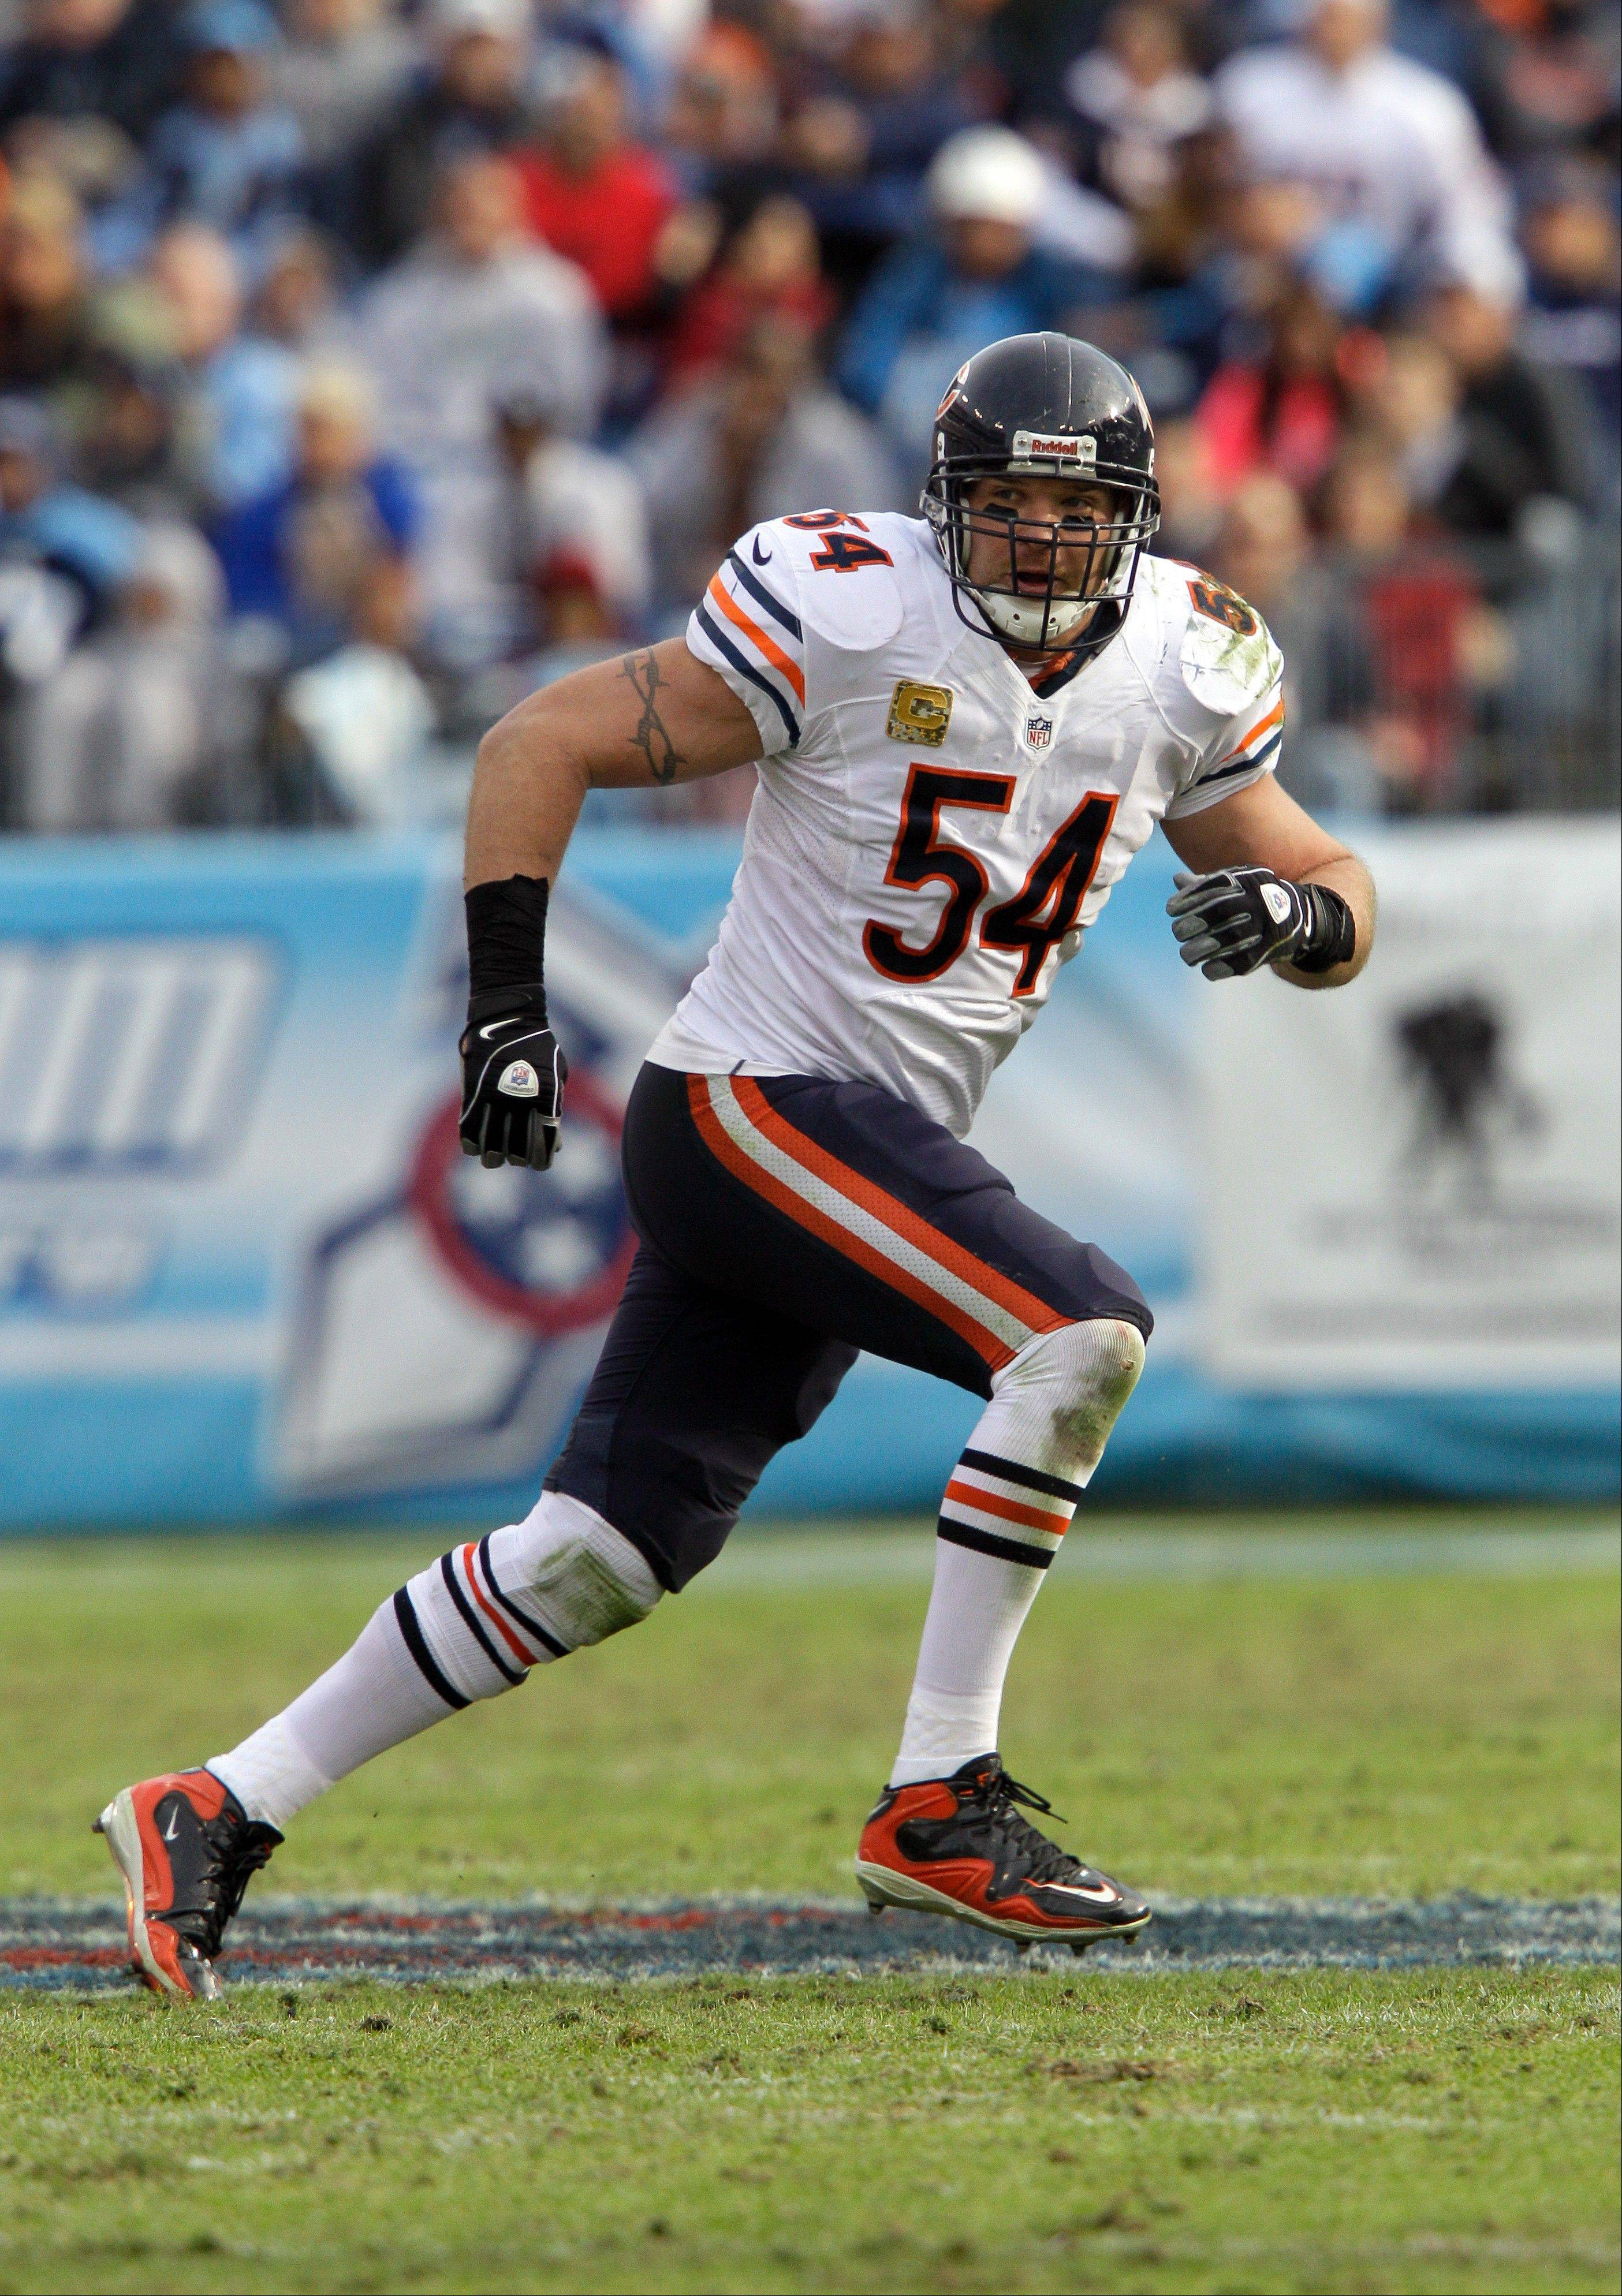 Bears middle linebacker Brian Urlacher is looking stronger these days. He had enough speed to return an interception for a 46-yard touchdown against the Tennessee Titans, and he had no problem chasing down speedy running back Chris Johnson.